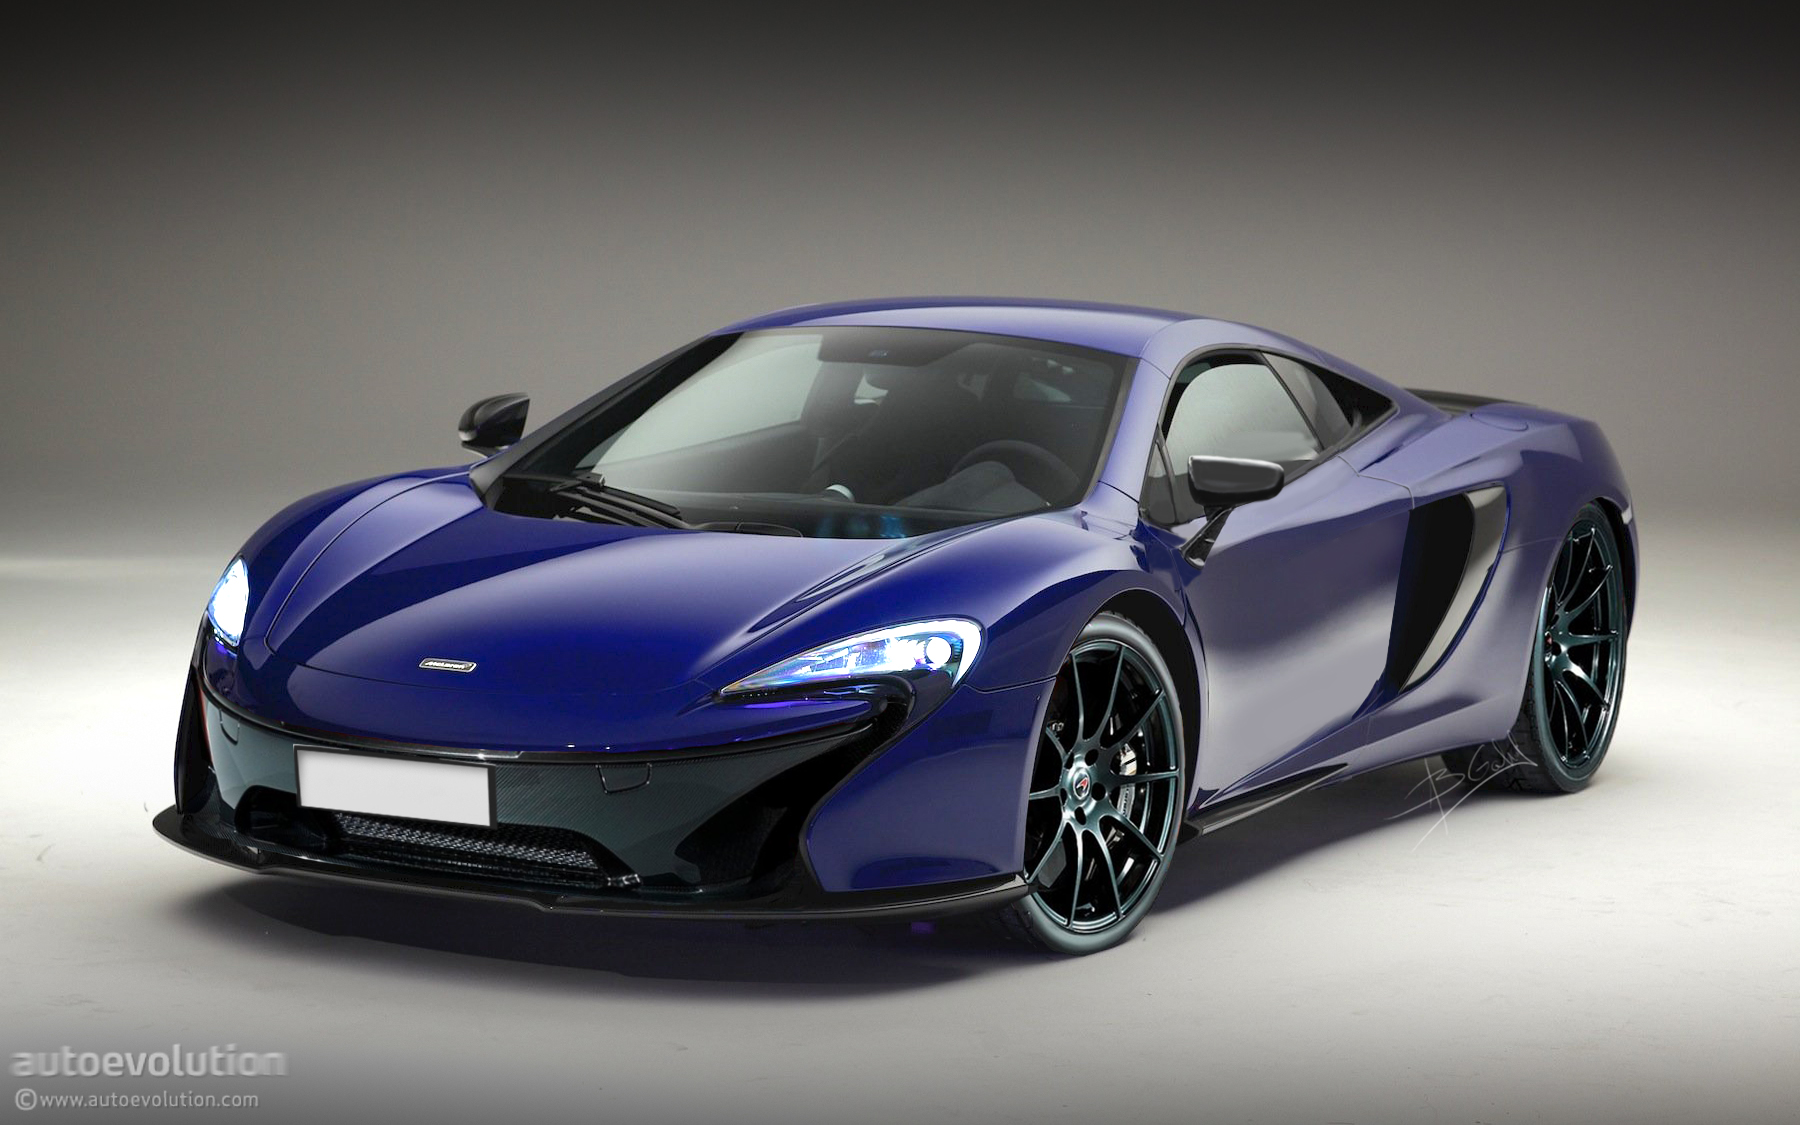 mclaren-sport-series-may-be-baptized-in-a-similar-fashion-to-the-650s-to-make-well-over-500-hp-90496_1.jpg